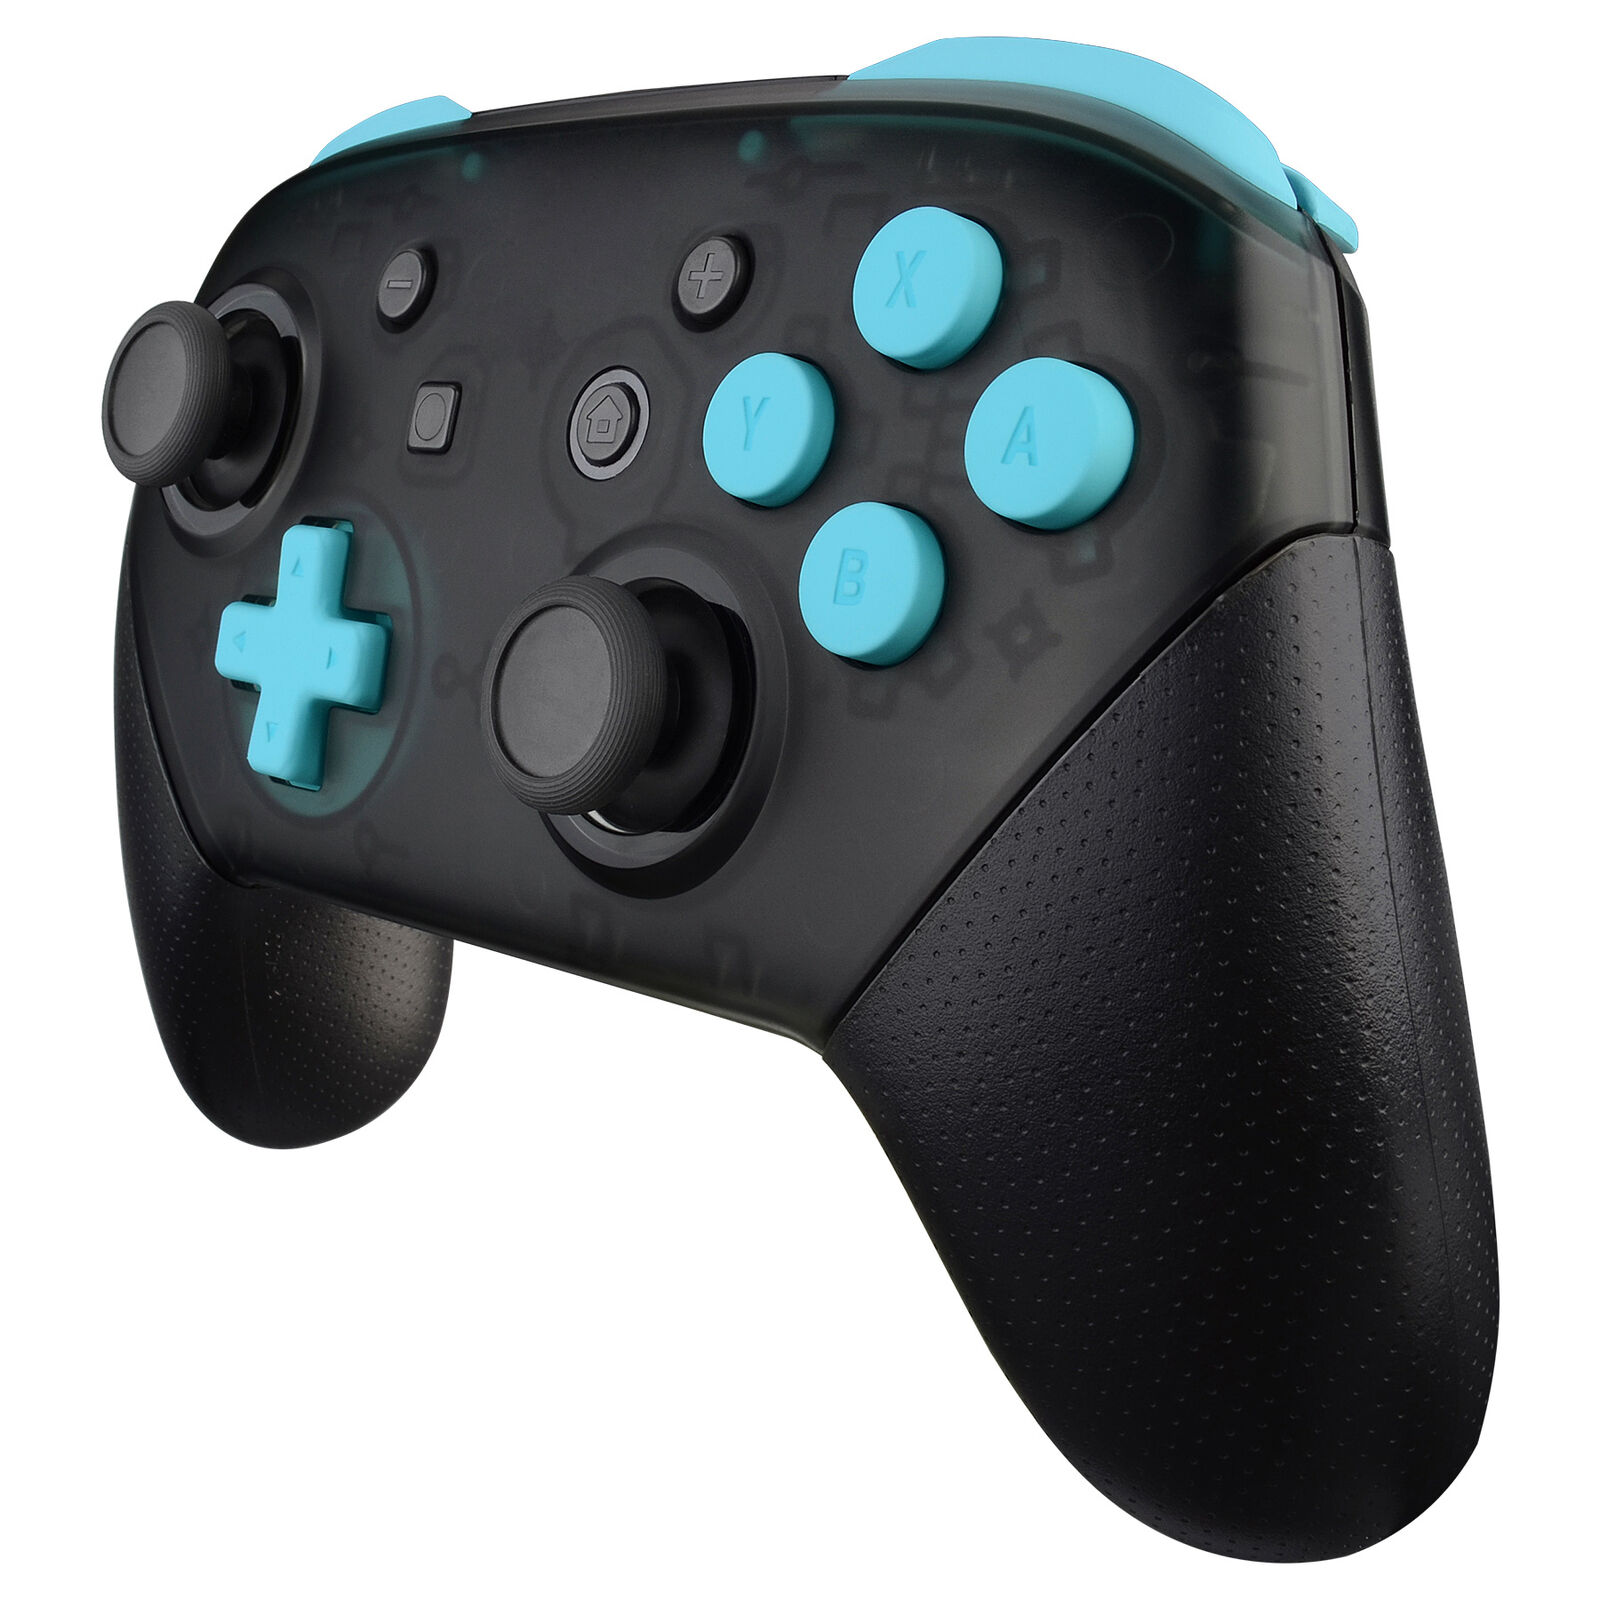 Nintendo Switch Pro Controller Black and Baby Blue Buttons